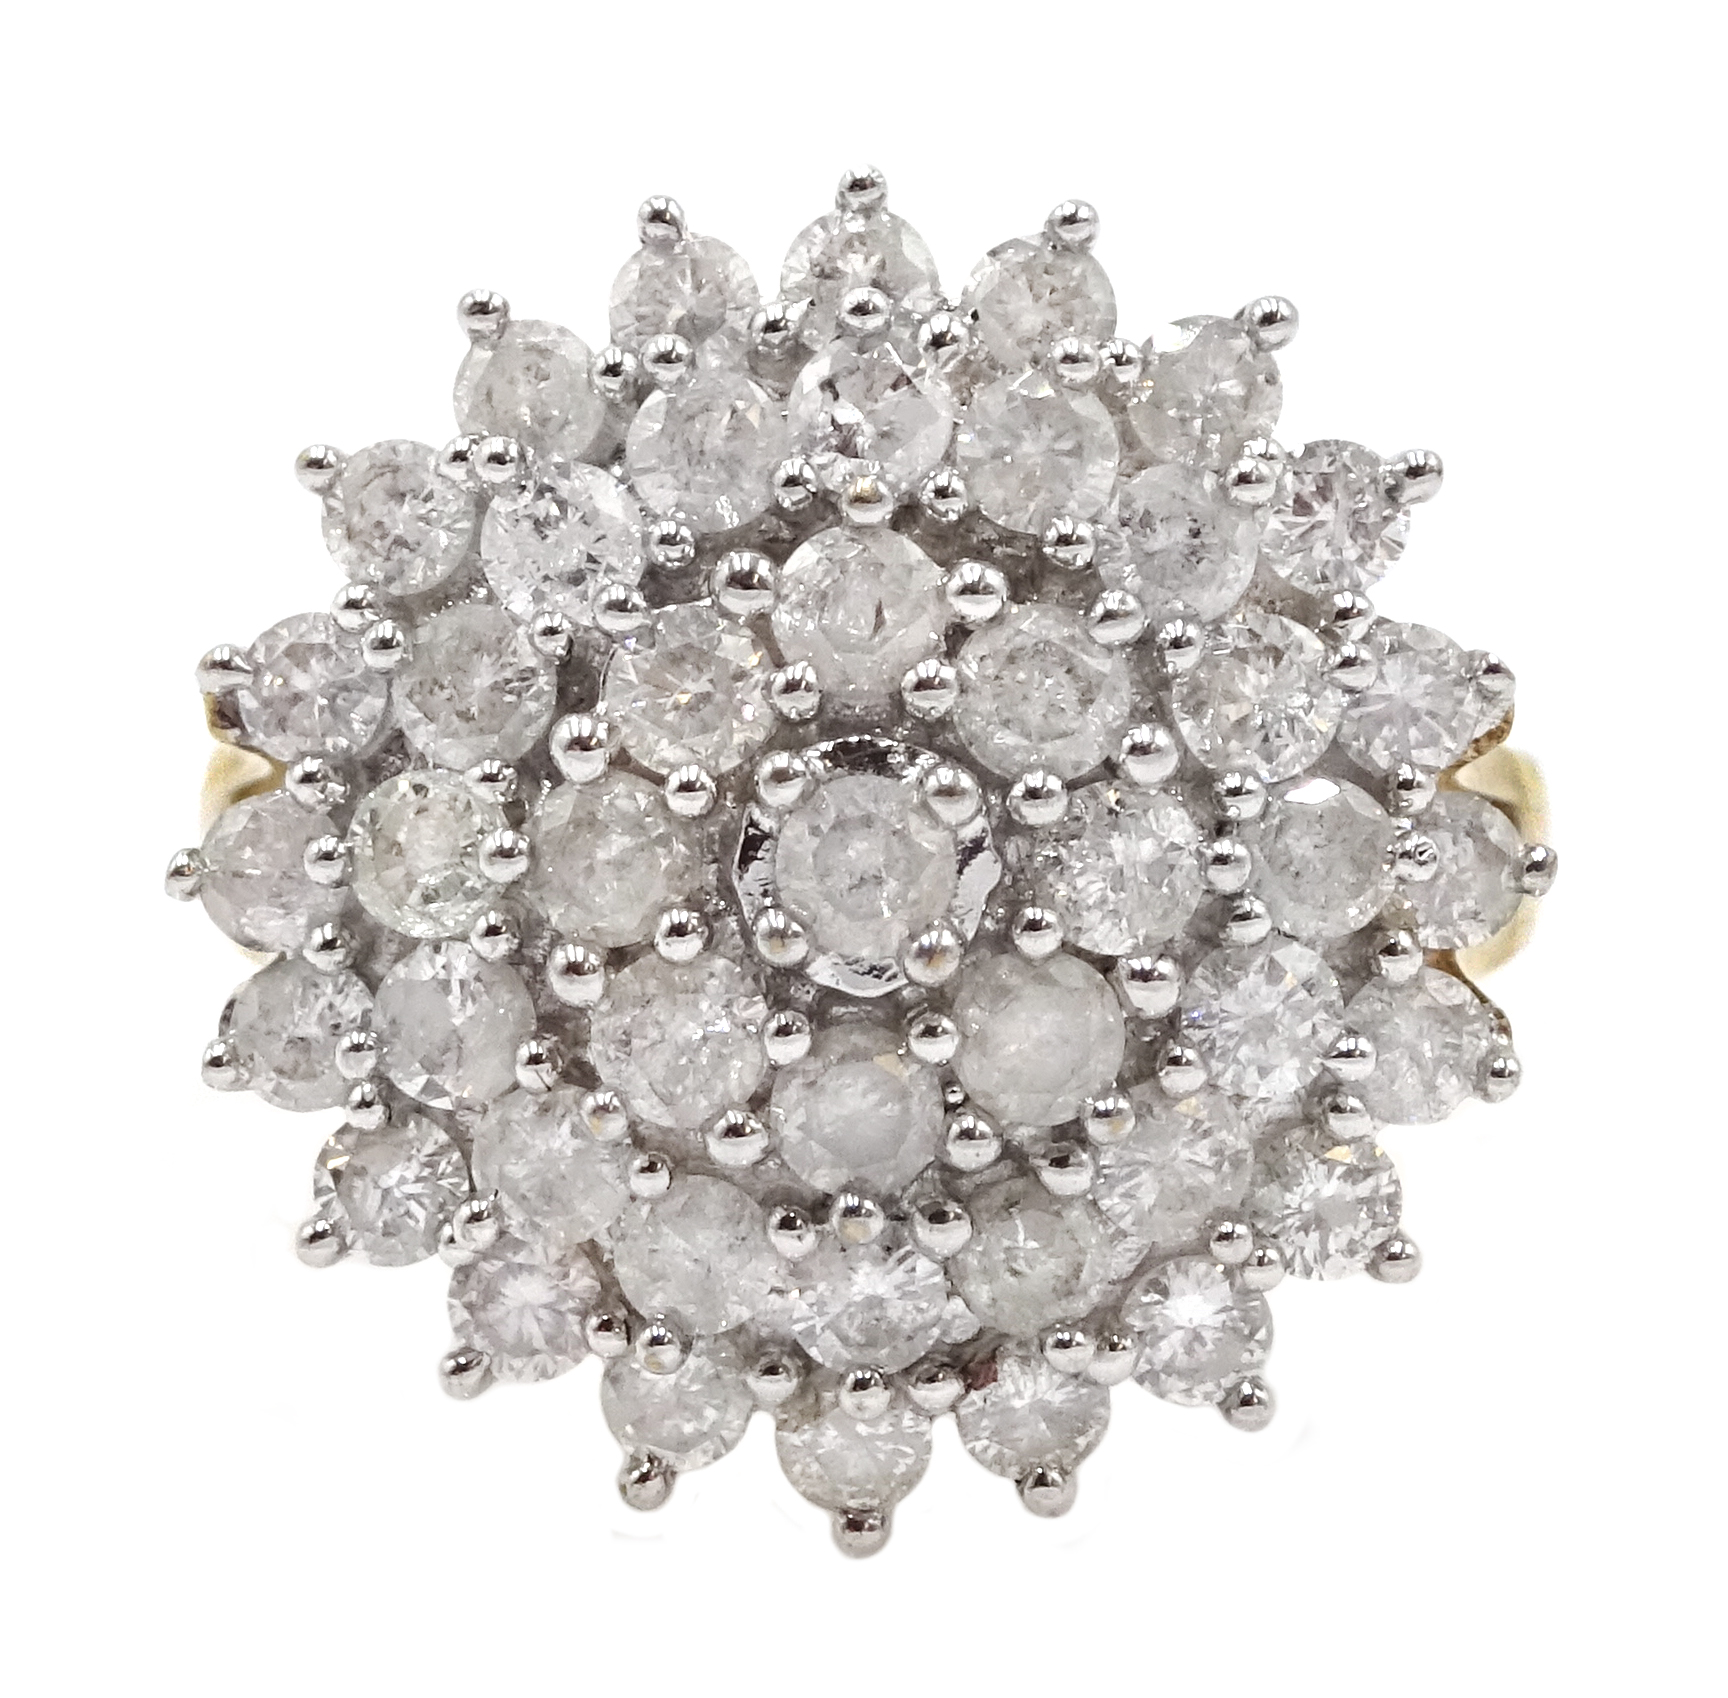 9ct gold cluster ring set with diamonds, diamond total weight approx 2.00 carat, free UK mainland